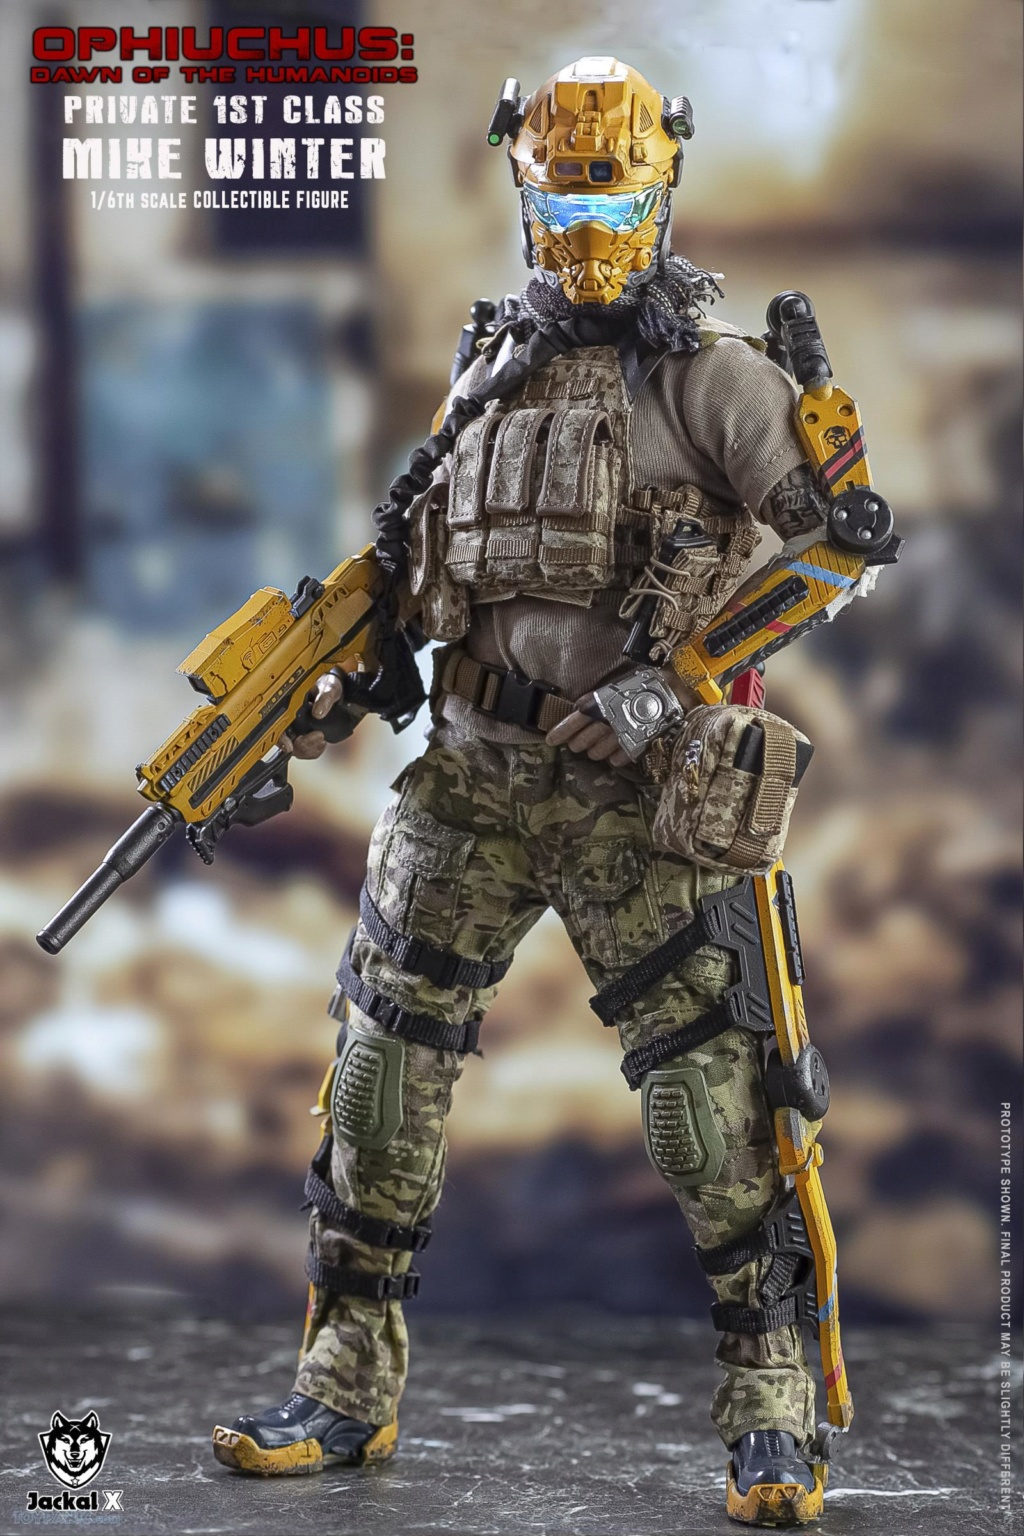 military - NEW PRODUCT: JackalX: 1/6 Ophiuchus: Dawn of Humanoid: Private 1st Class Mike Winter Collectible Figure (2 Versions) 43202016